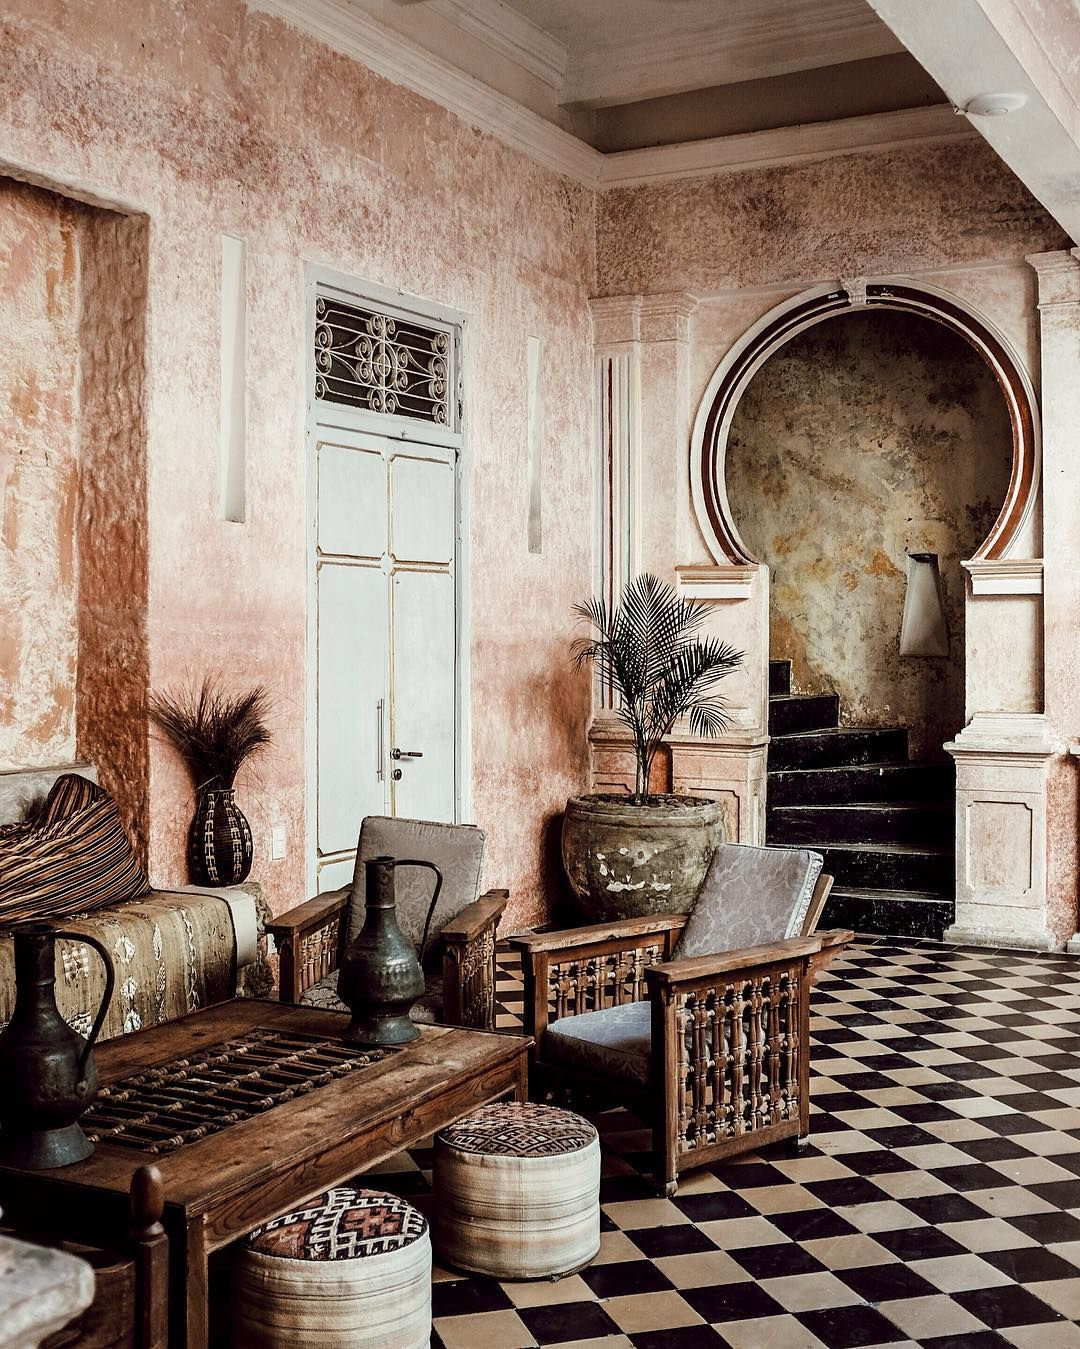 Interior inspiration. Hotel design to die for. c5dfe725a9f